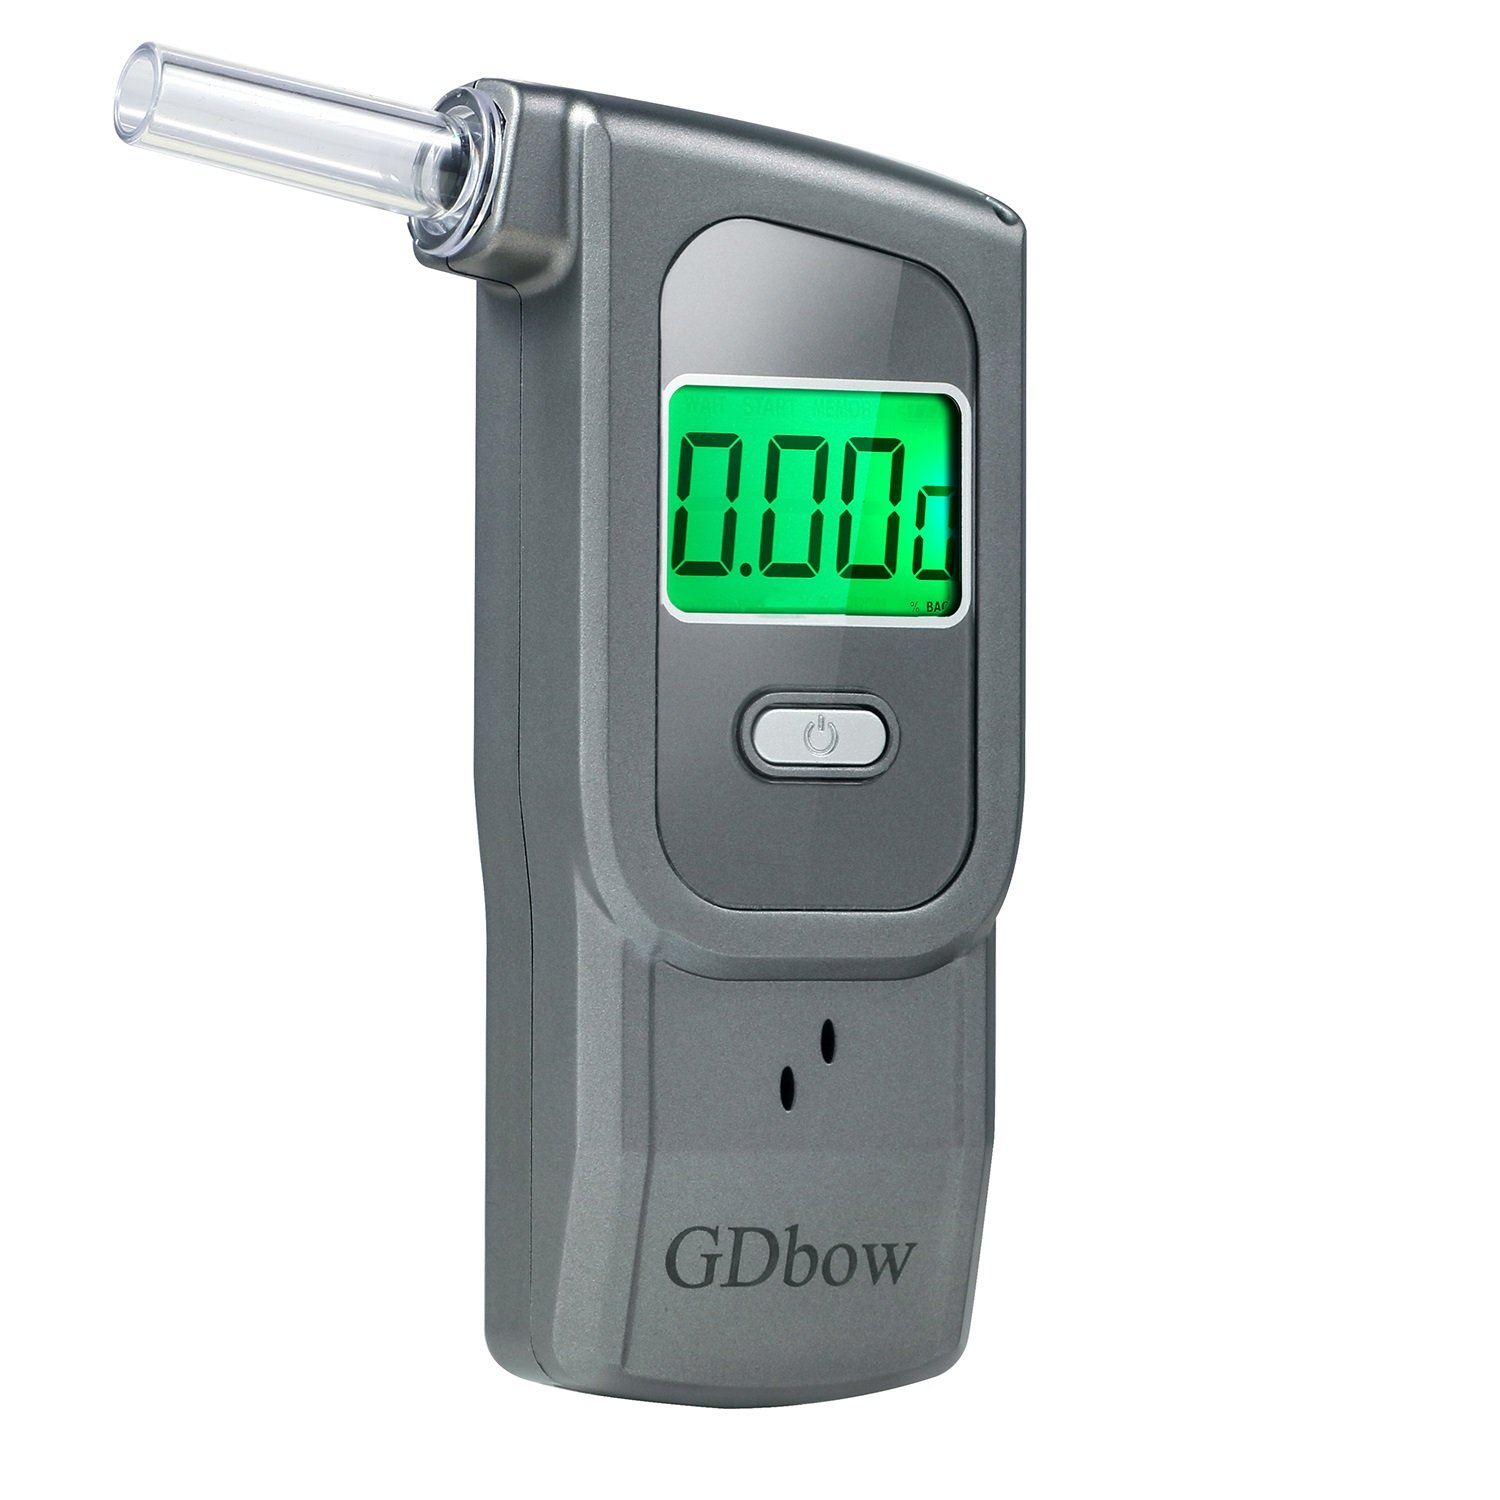 GDbow Portable Breathalyzer Alcohol Tester Recording 32 Testing Results with 5 Mouthpieces for Personal Use -Grey